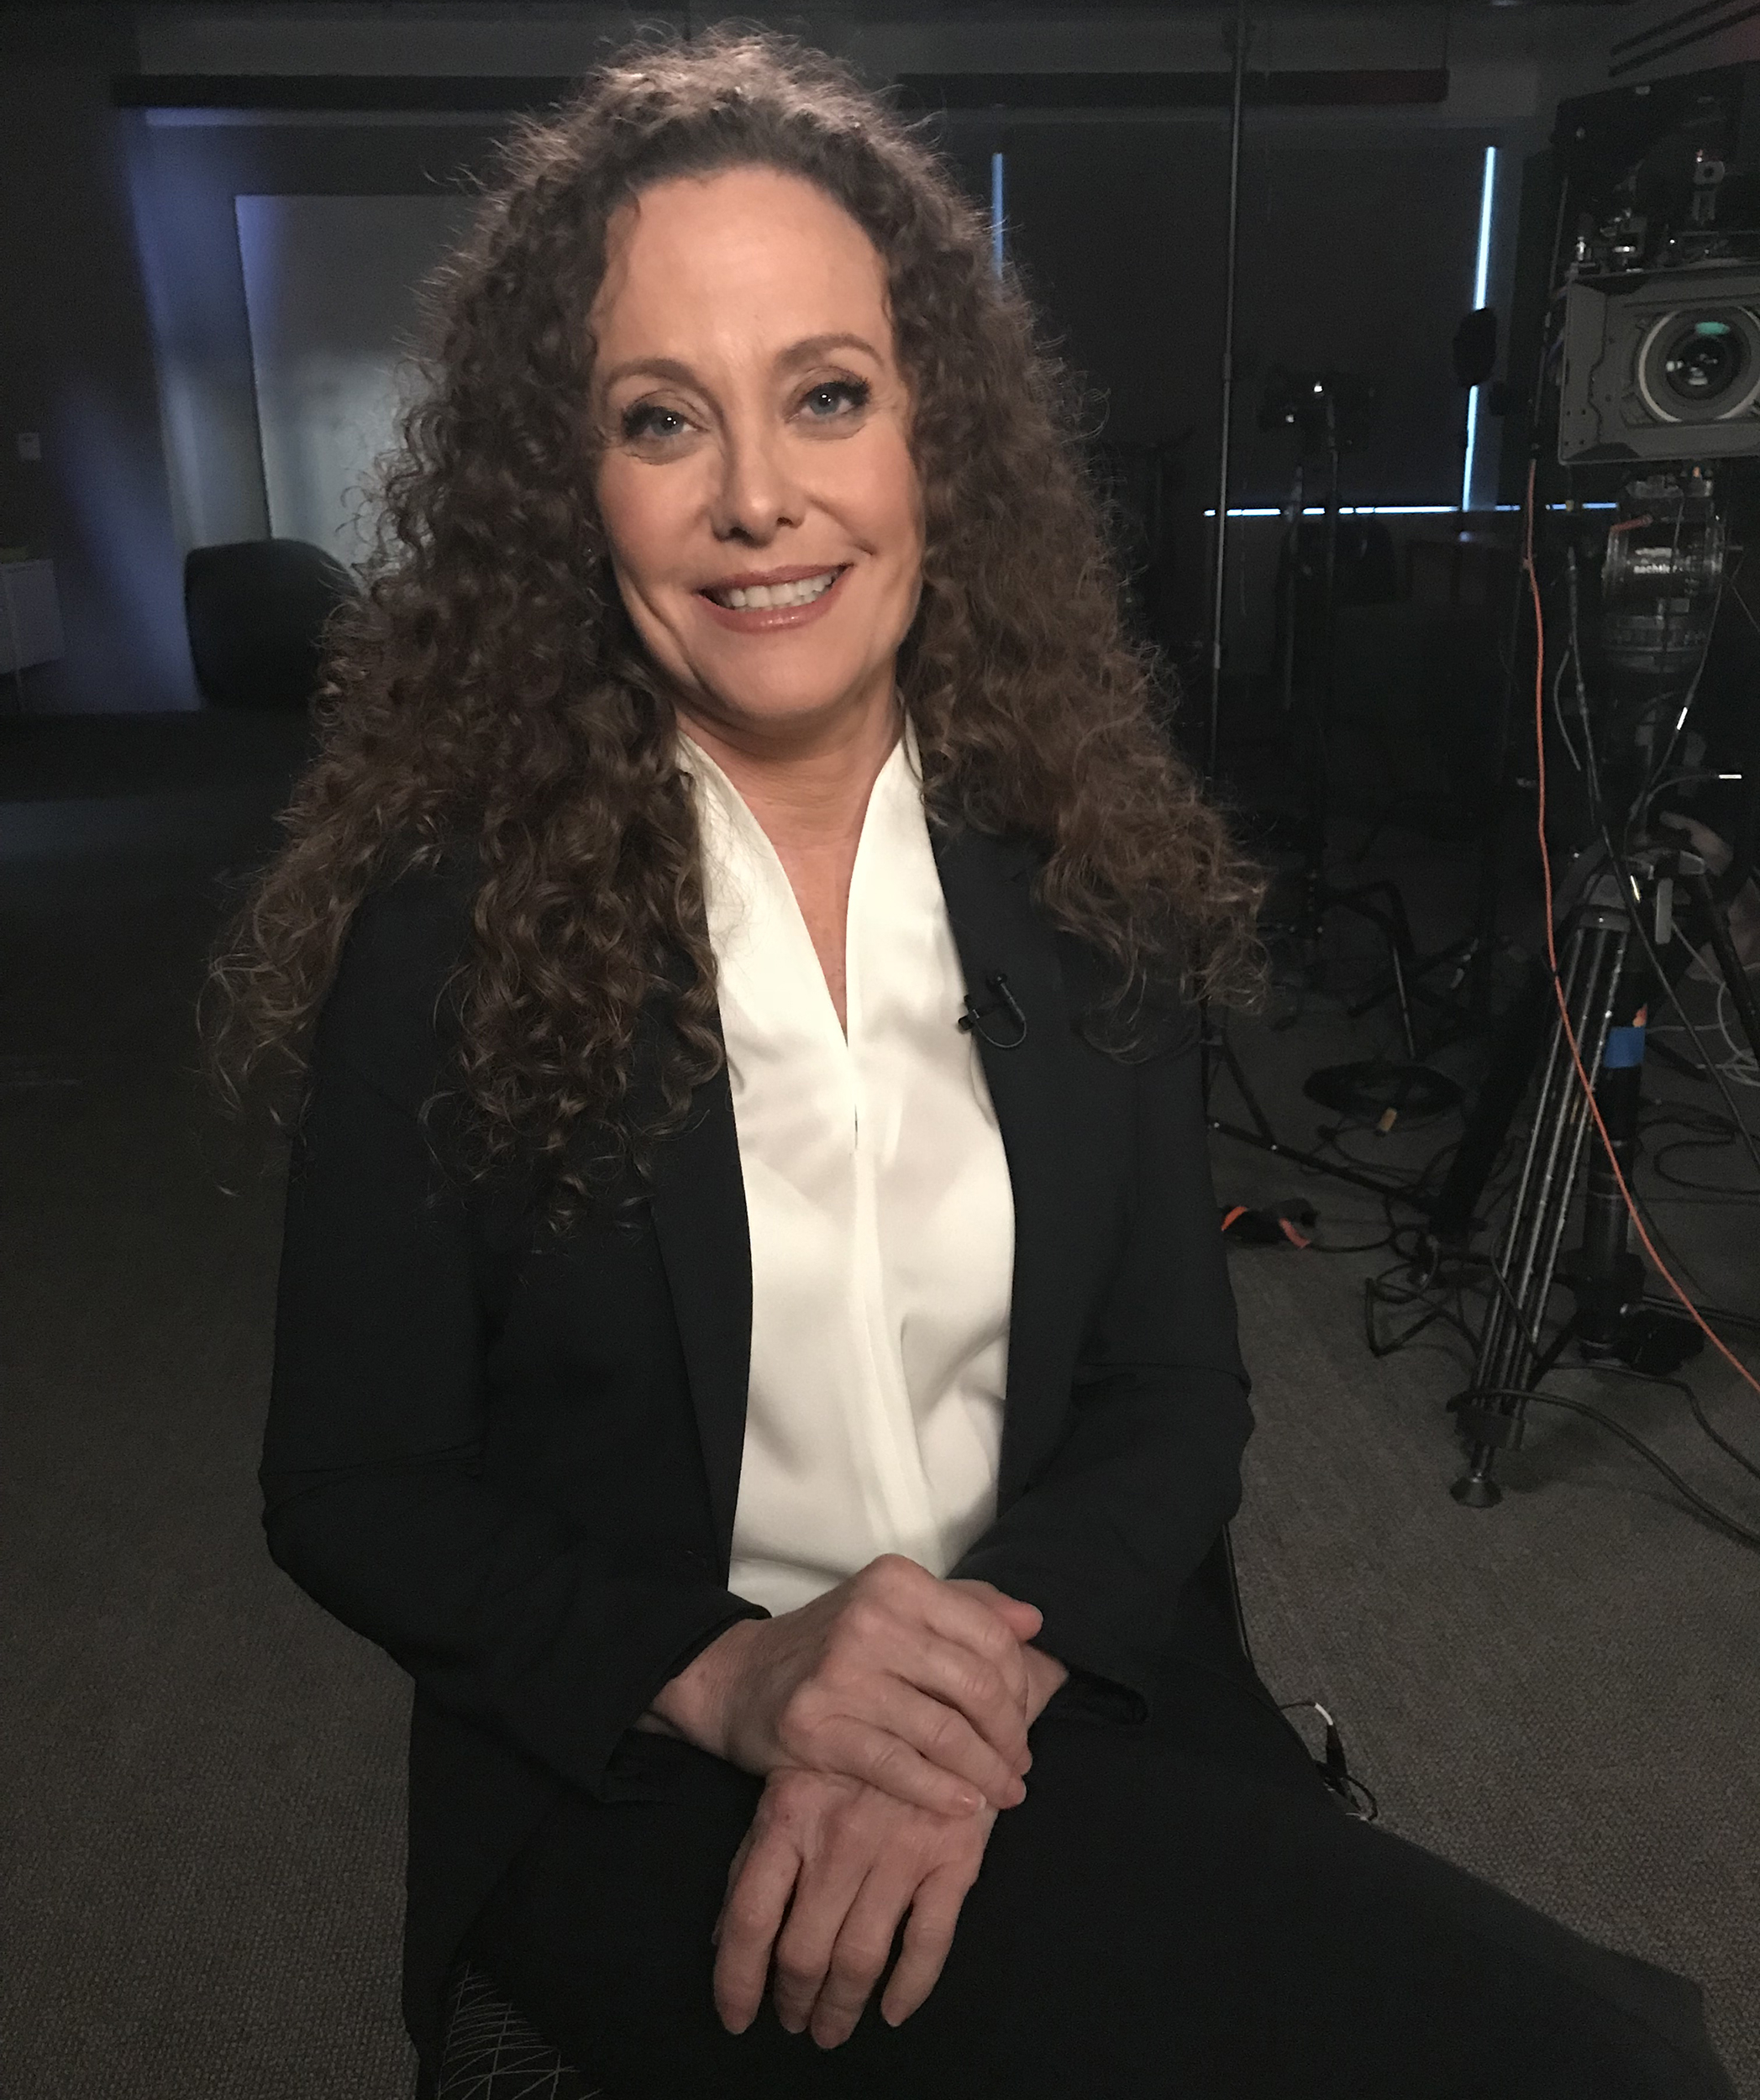 bd6f4a8d0cb Kavanaugh accuser Julie Swetnick speaks out on sexual abuse allegations